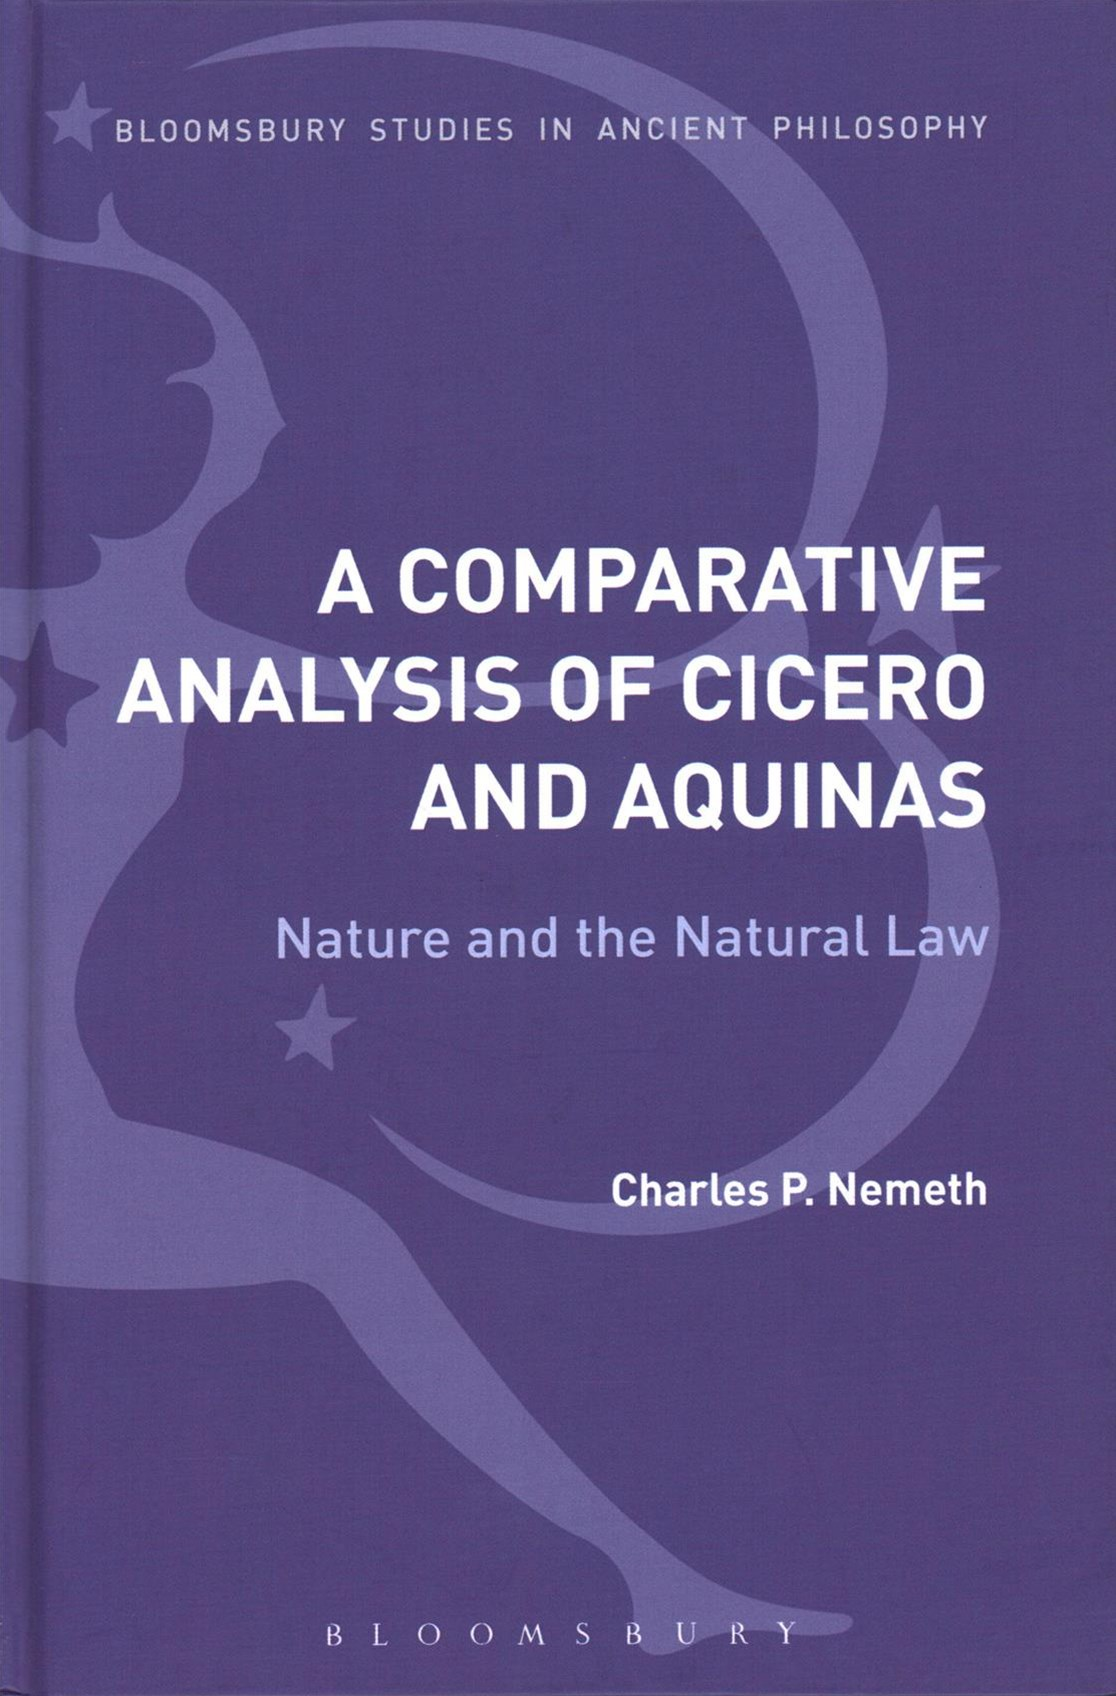 Comparative Analysis of Cicero and Aquinas